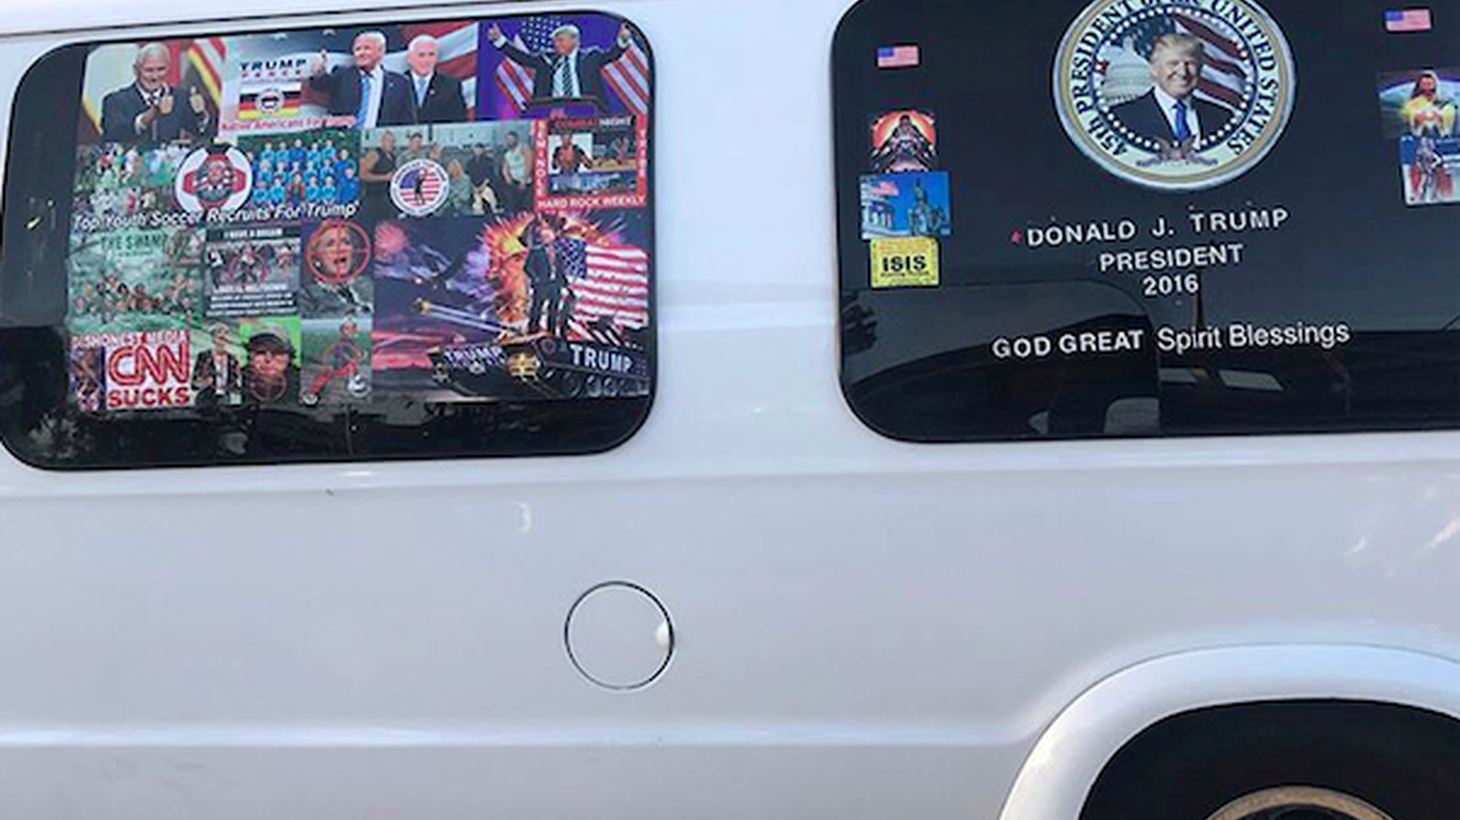 Cesar Sayoc is charged with five federal crimes for allegedly sending 13 IEDs to Democratic leaders and those who've criticized Trump. Sayoc drove a white van covered with pro-Trump stickers, and pictures of those leaders with crosshairs on them.